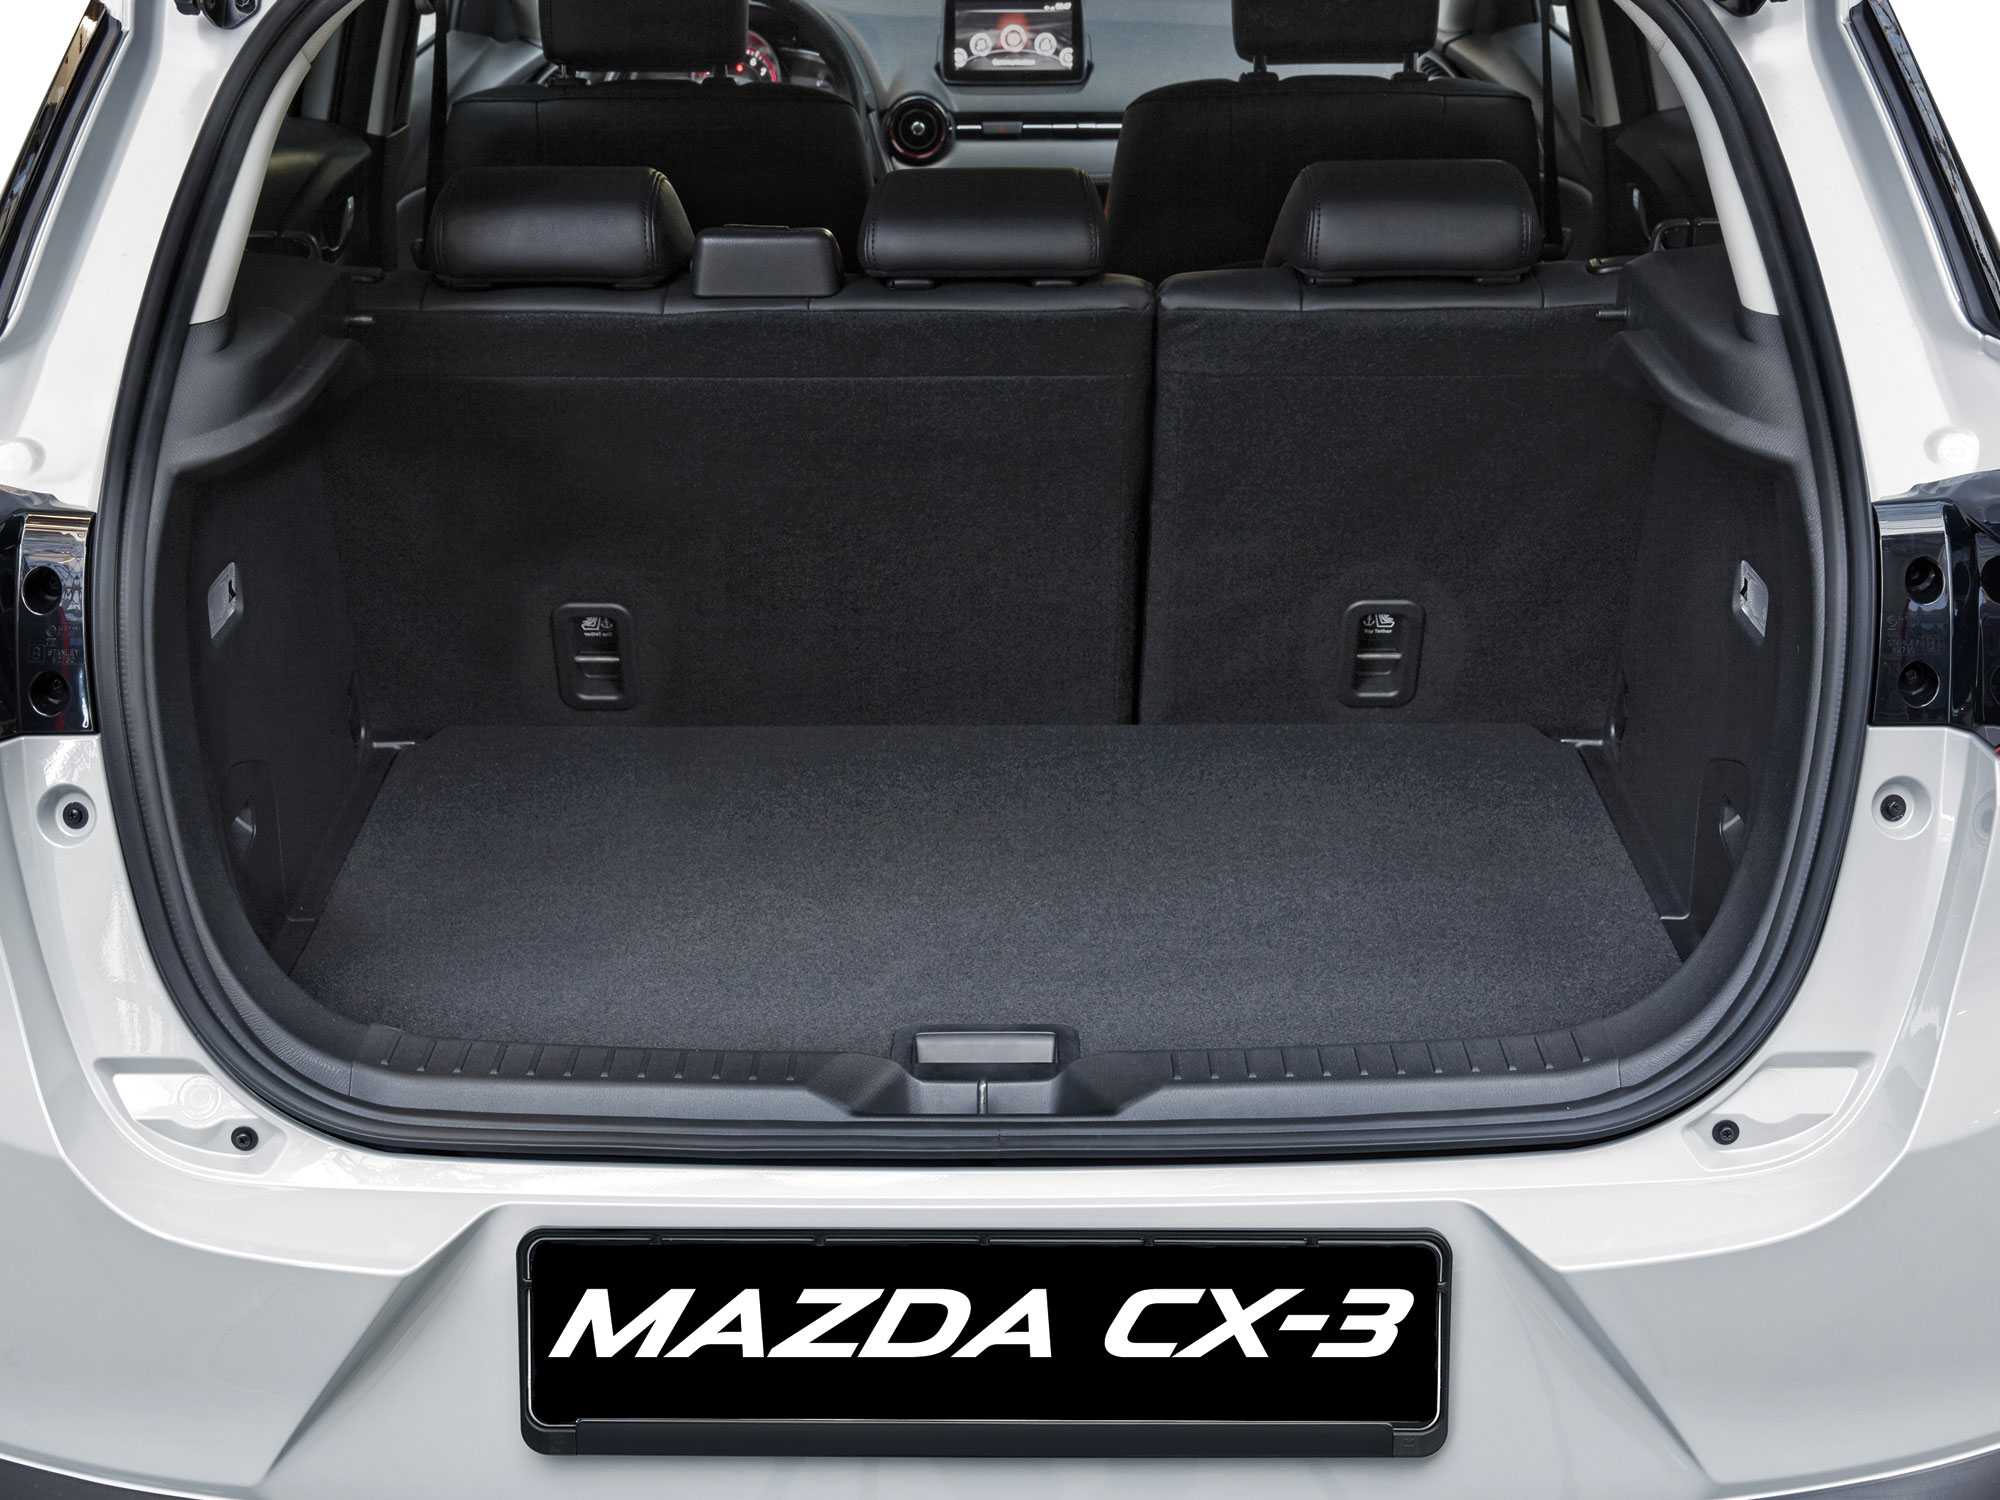 mazda cx 3 2019 kaufen m nchen auto till. Black Bedroom Furniture Sets. Home Design Ideas